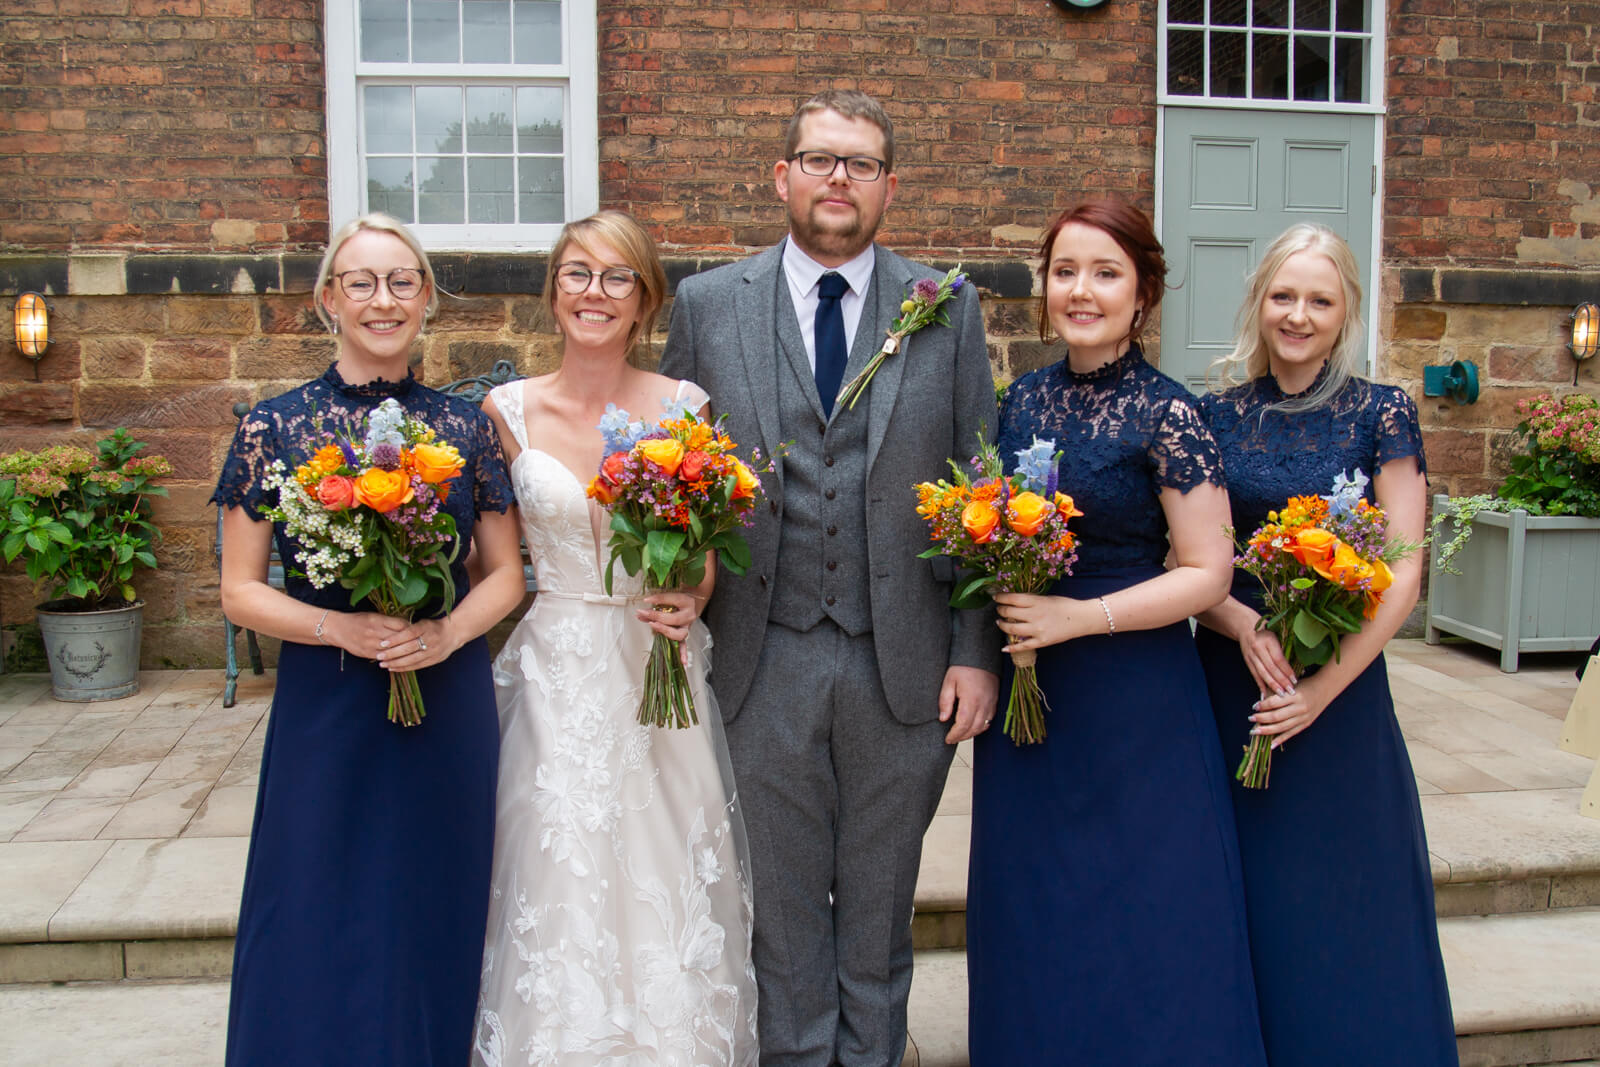 Bride and groom pose for a formal portrait with three bridesmaids